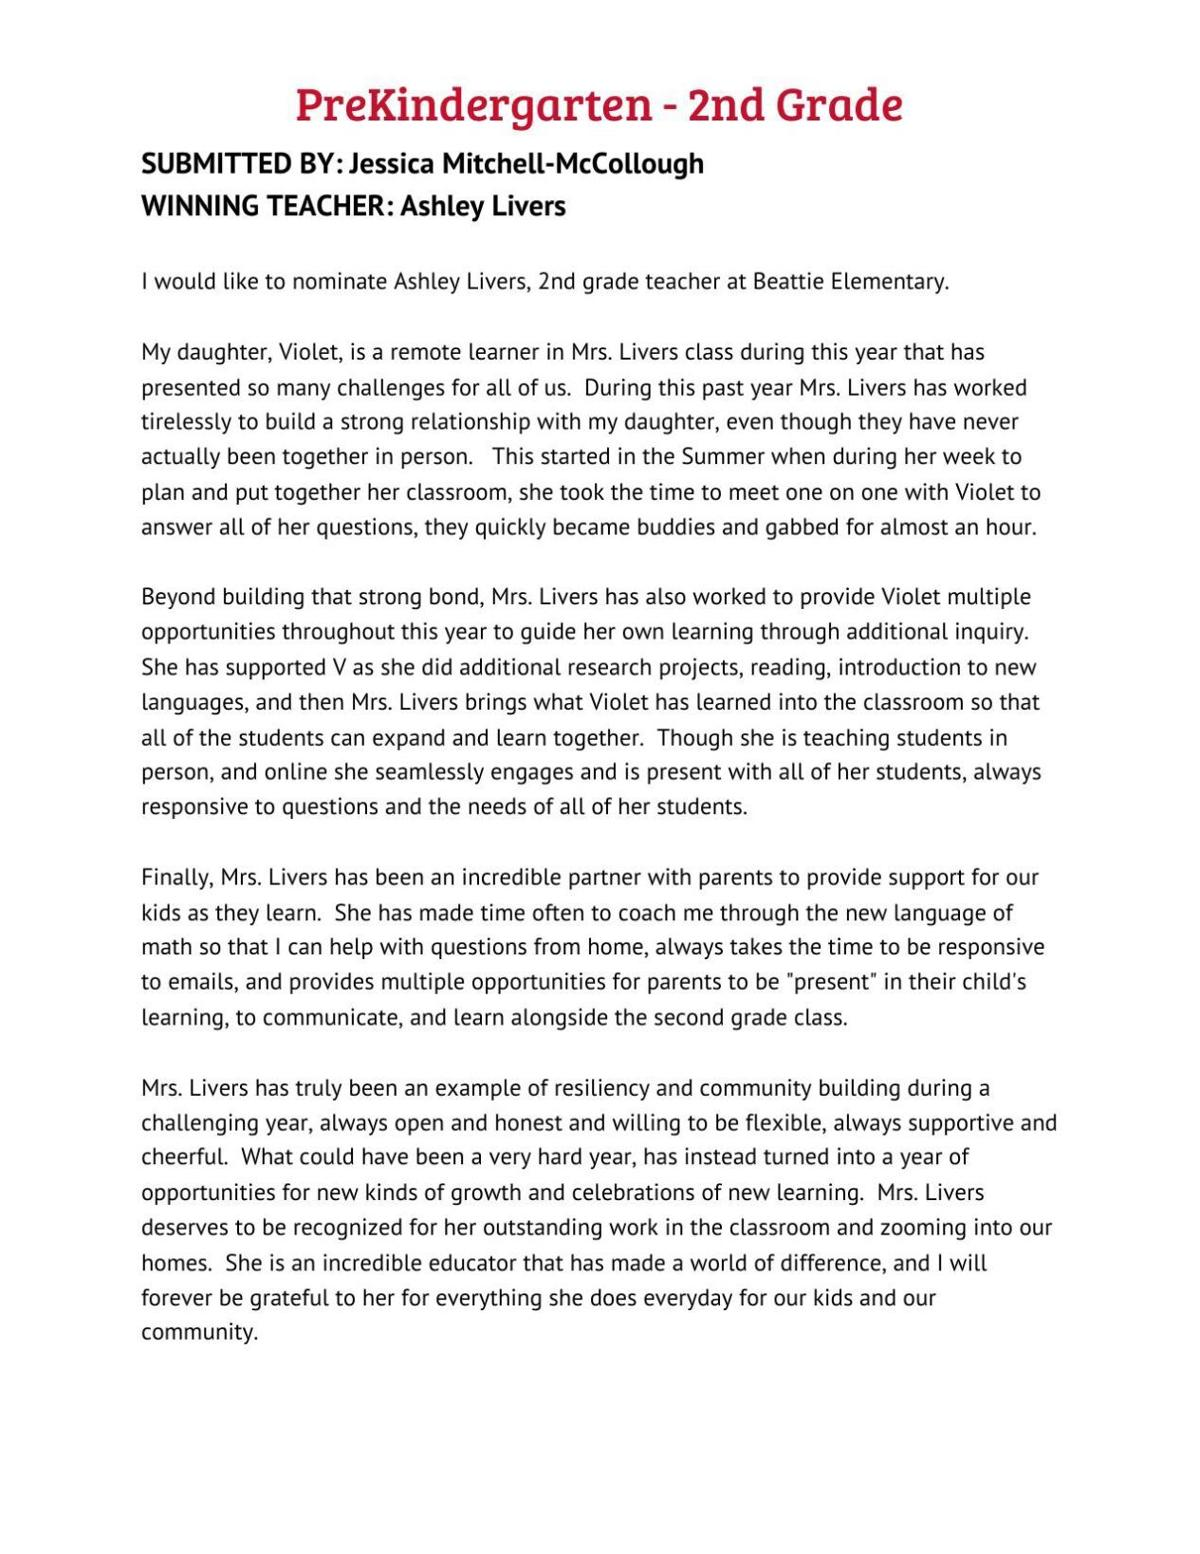 Ashley Livers/preK-2nd teacher letter